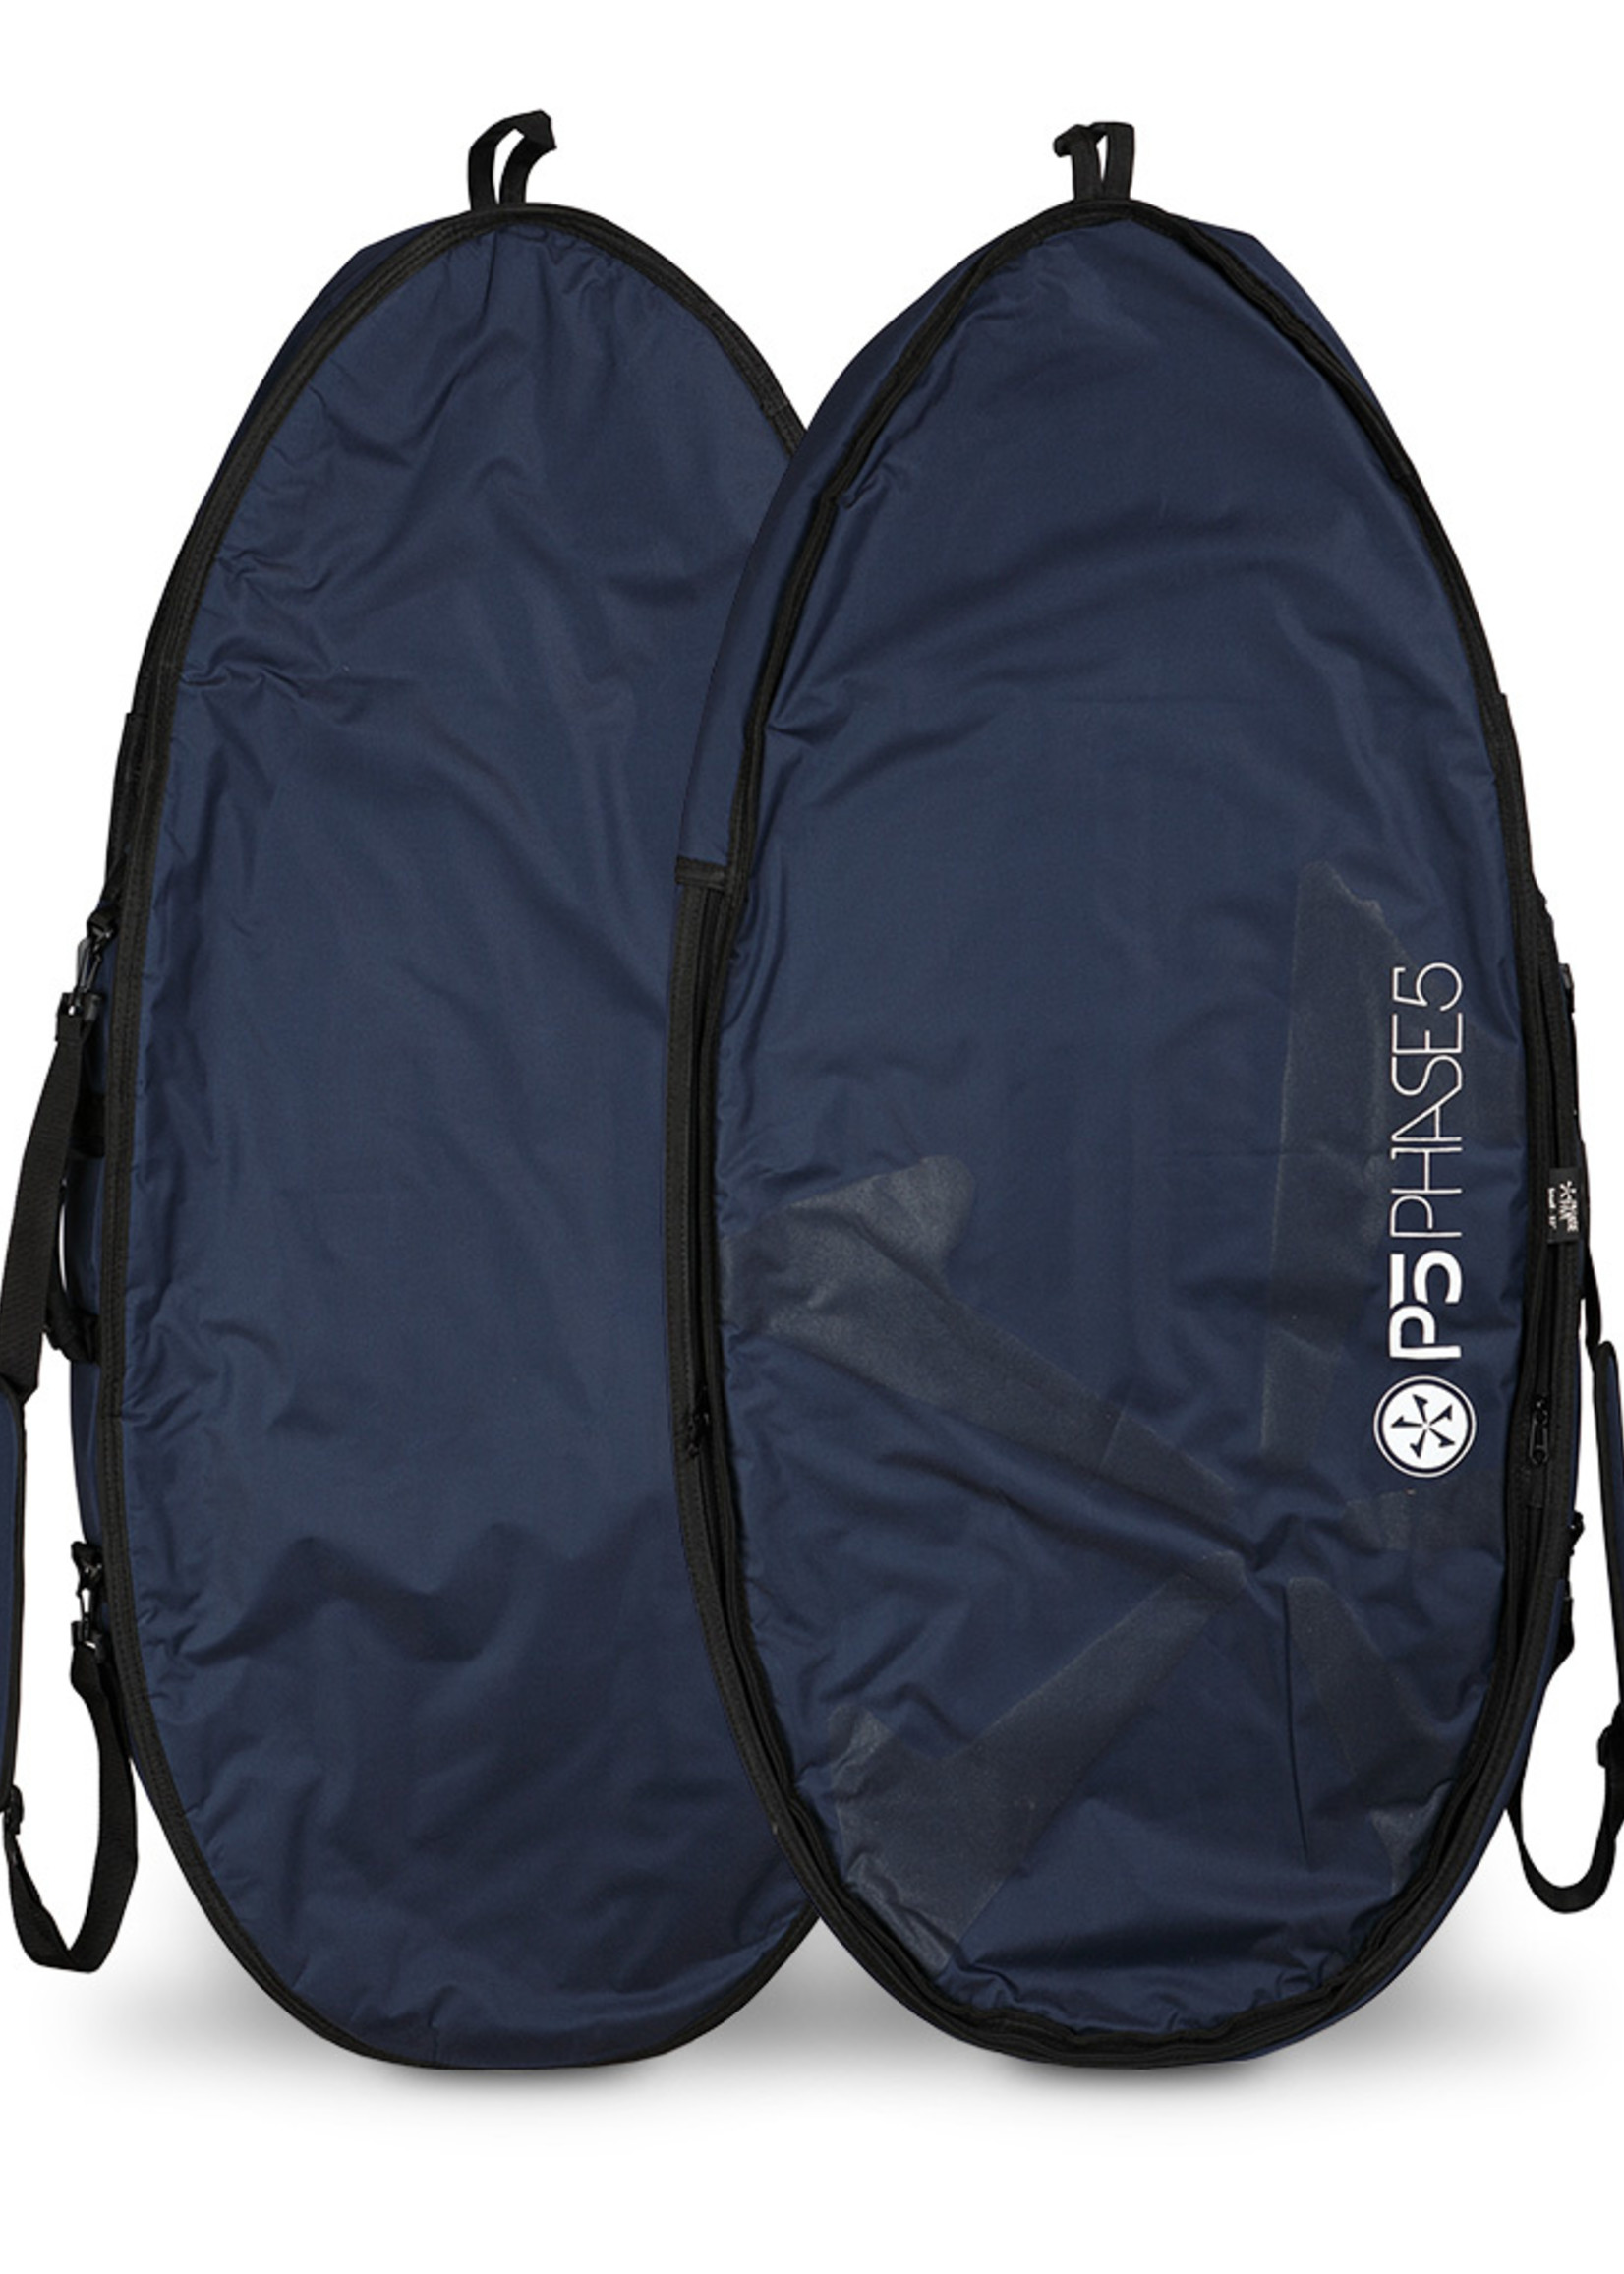 Phase Five Phase Five Deluxe Travel Board Bag Navy